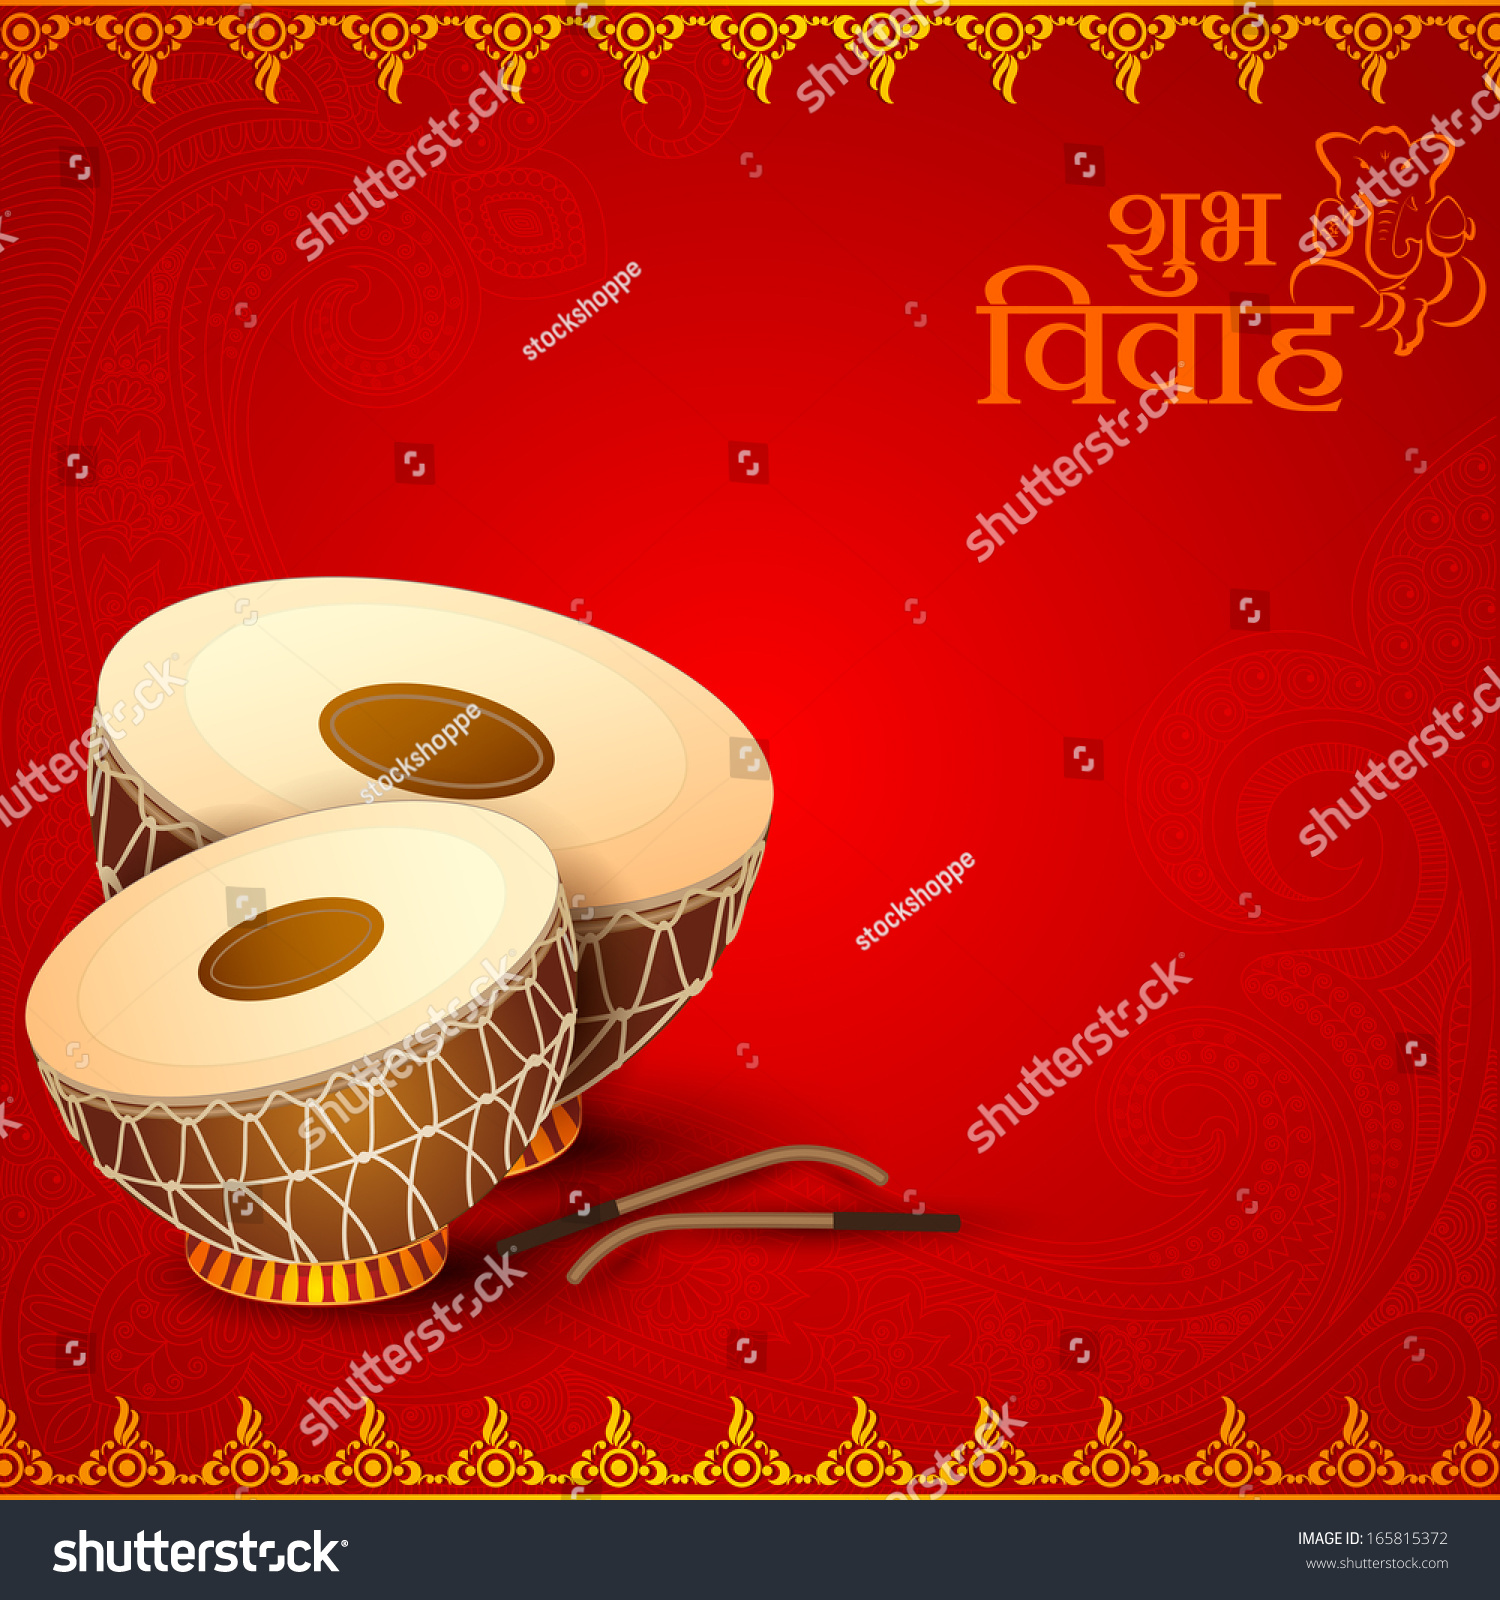 Civil Engineering Quotes Wallpapers Vector Illustration Of Drum In Indian Wedding Invitation